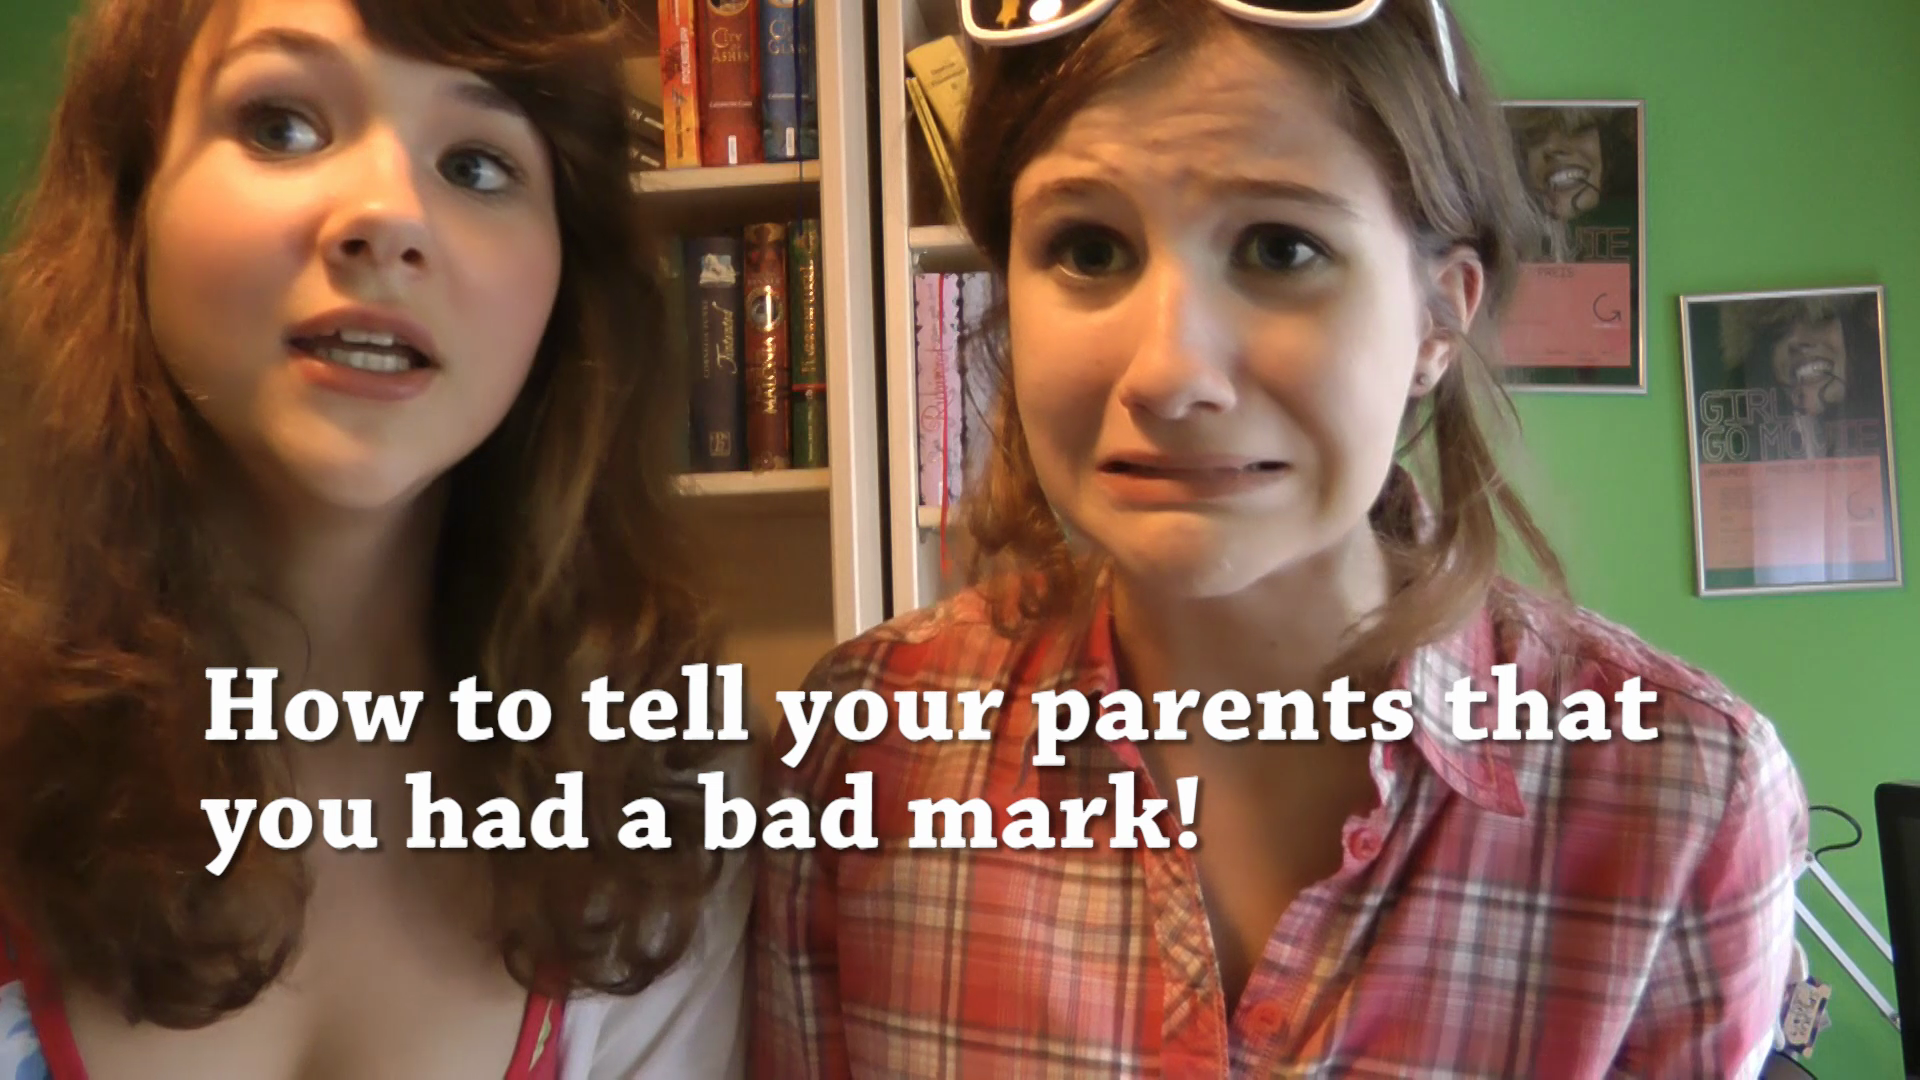 """#4: """"How to tell your parents about a bad mark!"""""""